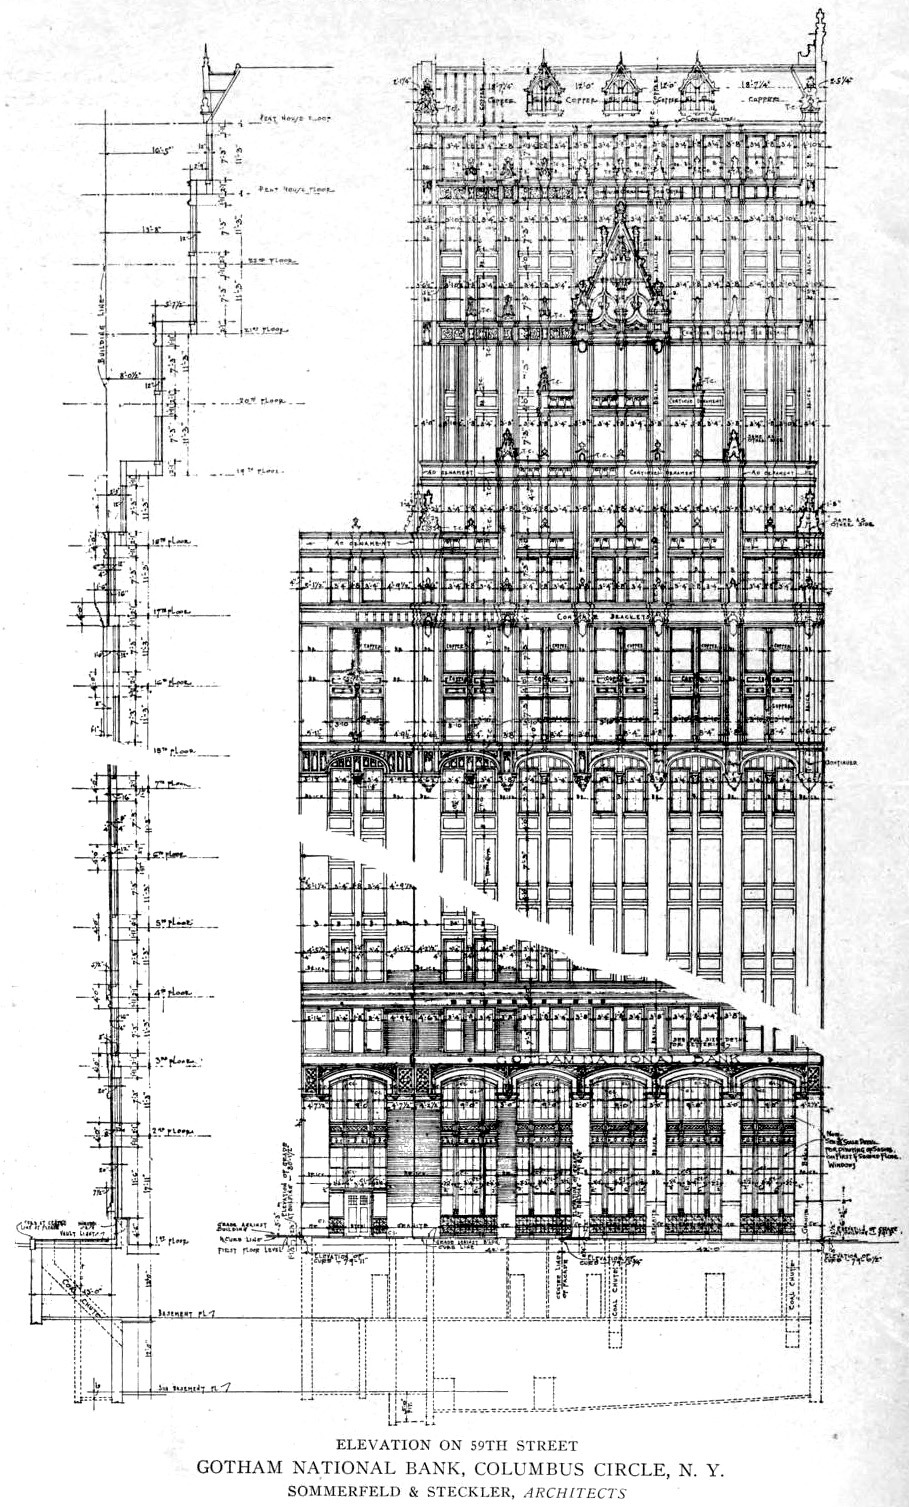 Elevation of the Gotham National Bank on Columbus Circle, New York City